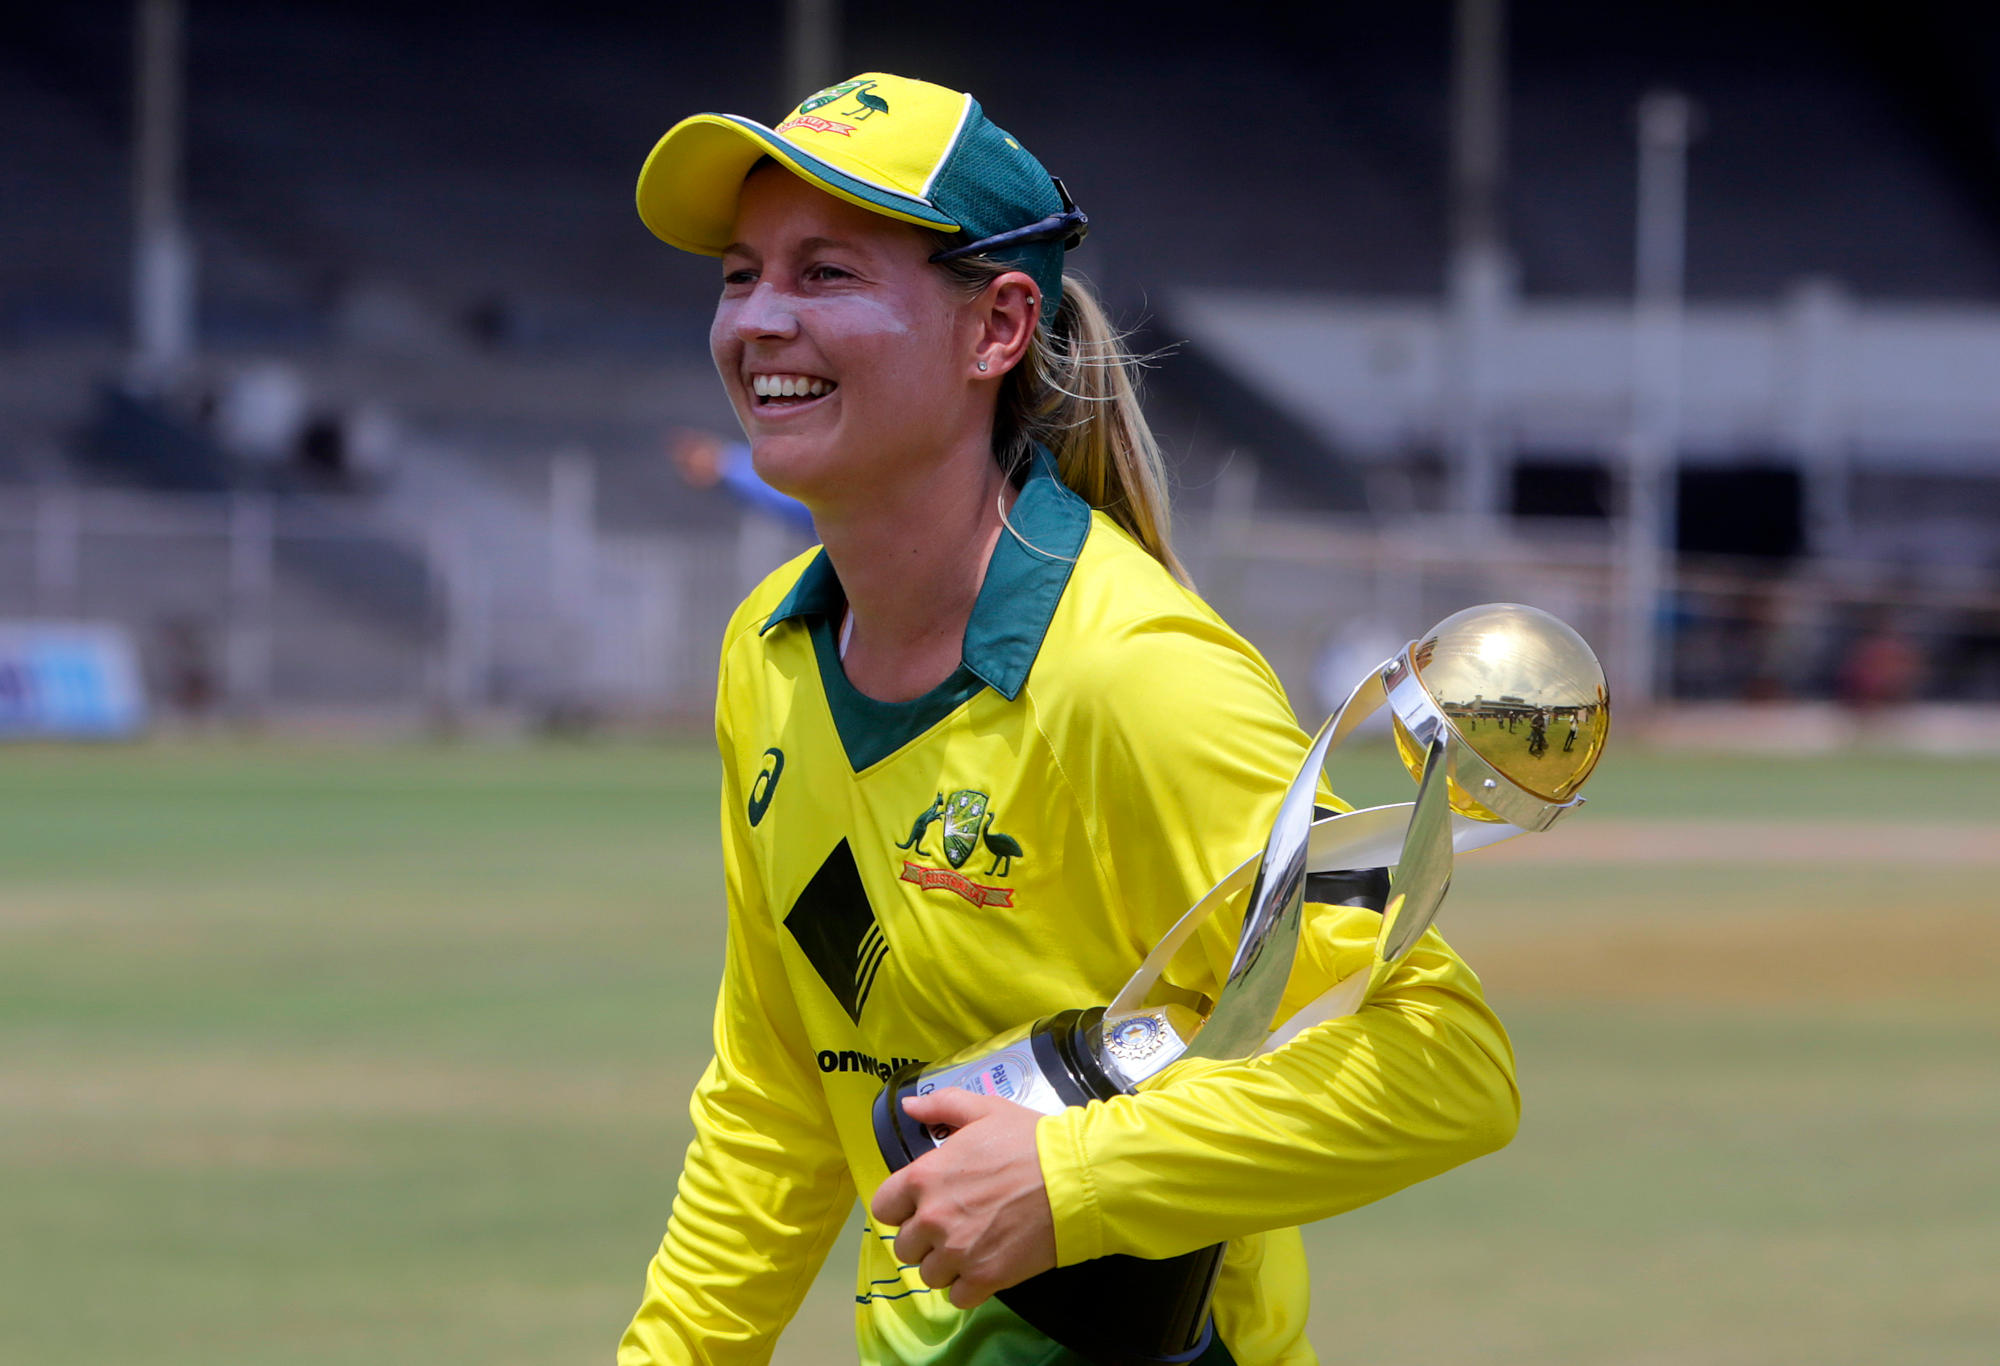 Australia's captain Meg Lanning with the trophy smiles after winning the final of Women's cricket T20 Triangular Series.